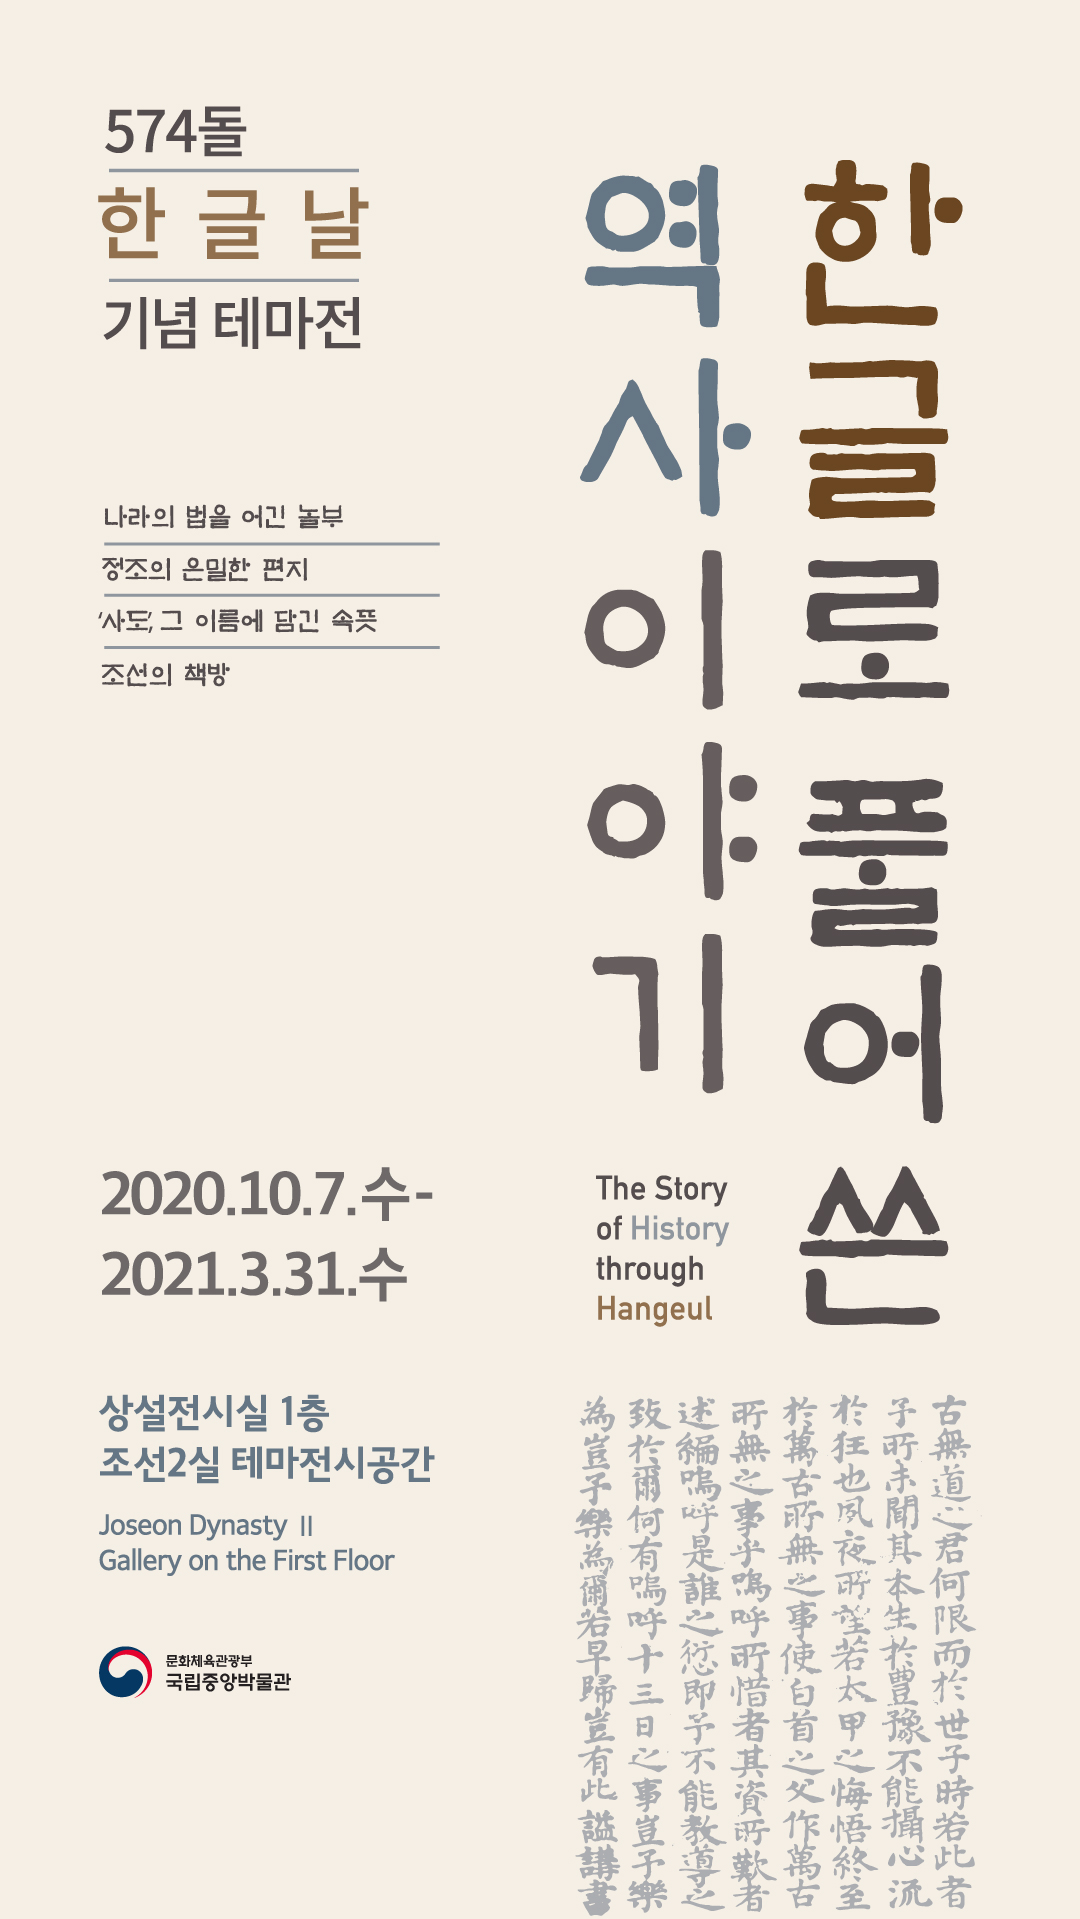 The story of History through Hangeul